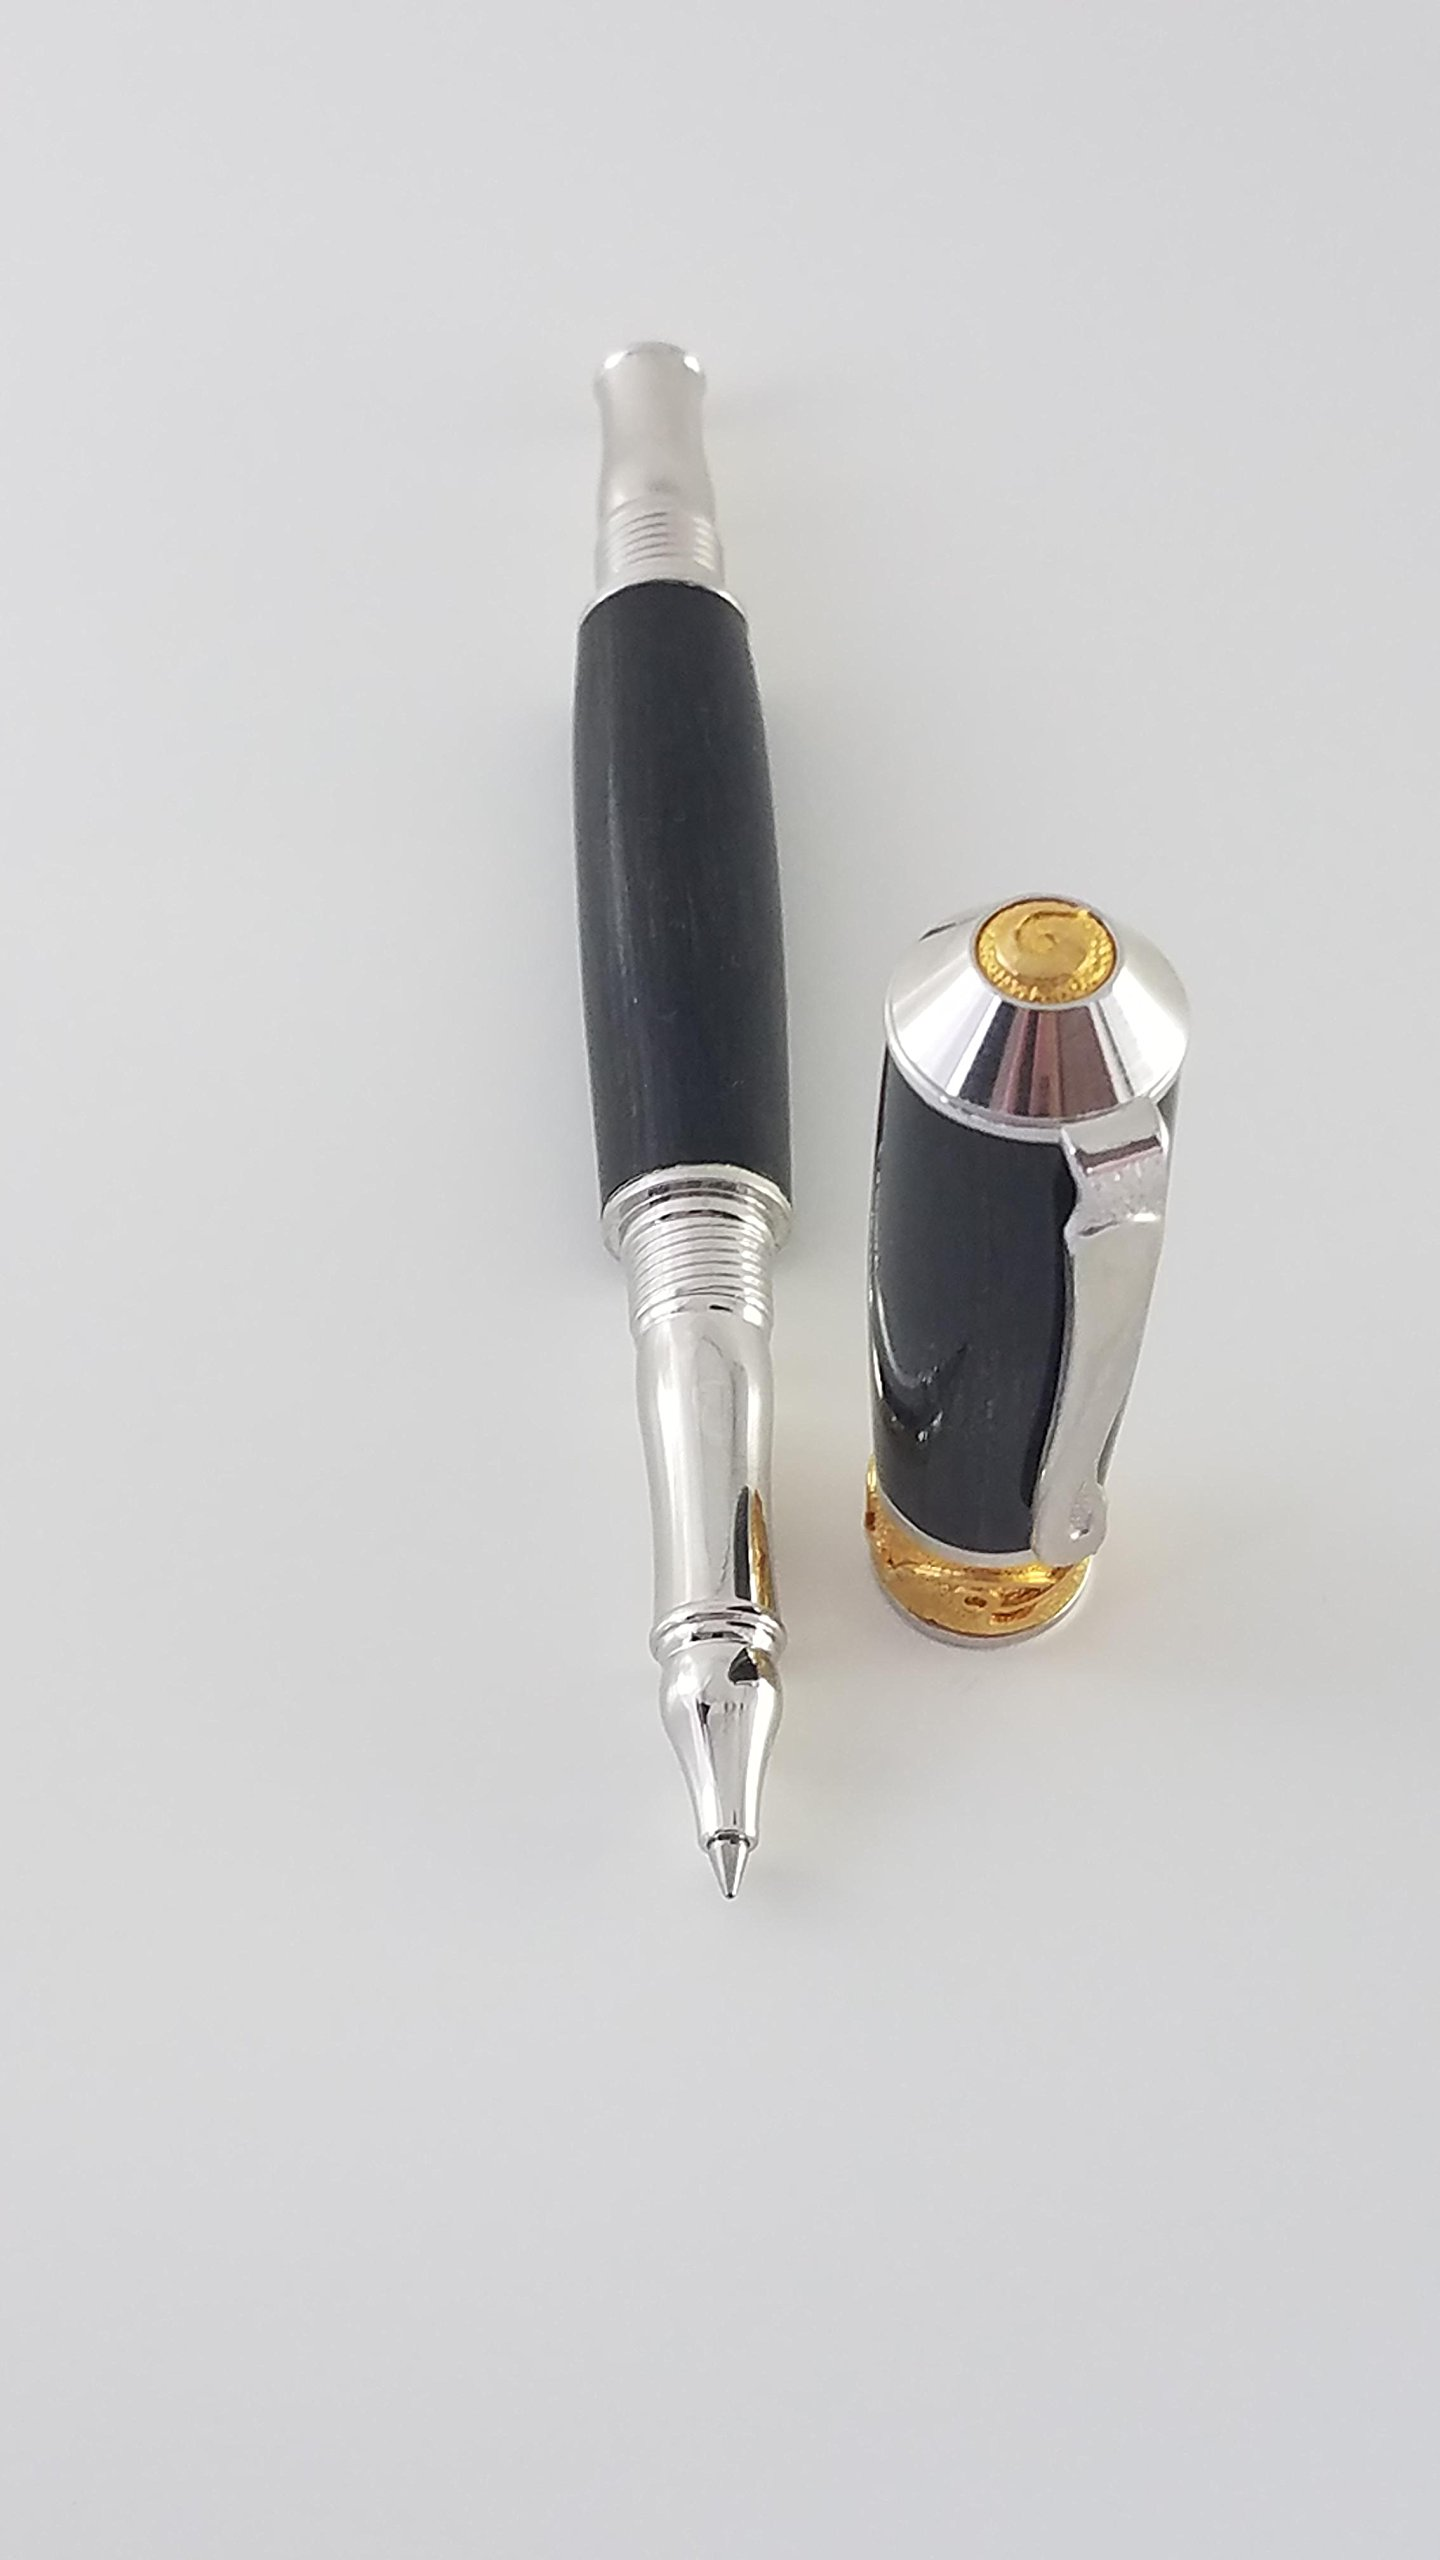 Broadwell Nouveau Sceptre Rhodium and 22kt Gold Rollerball Pen Kit